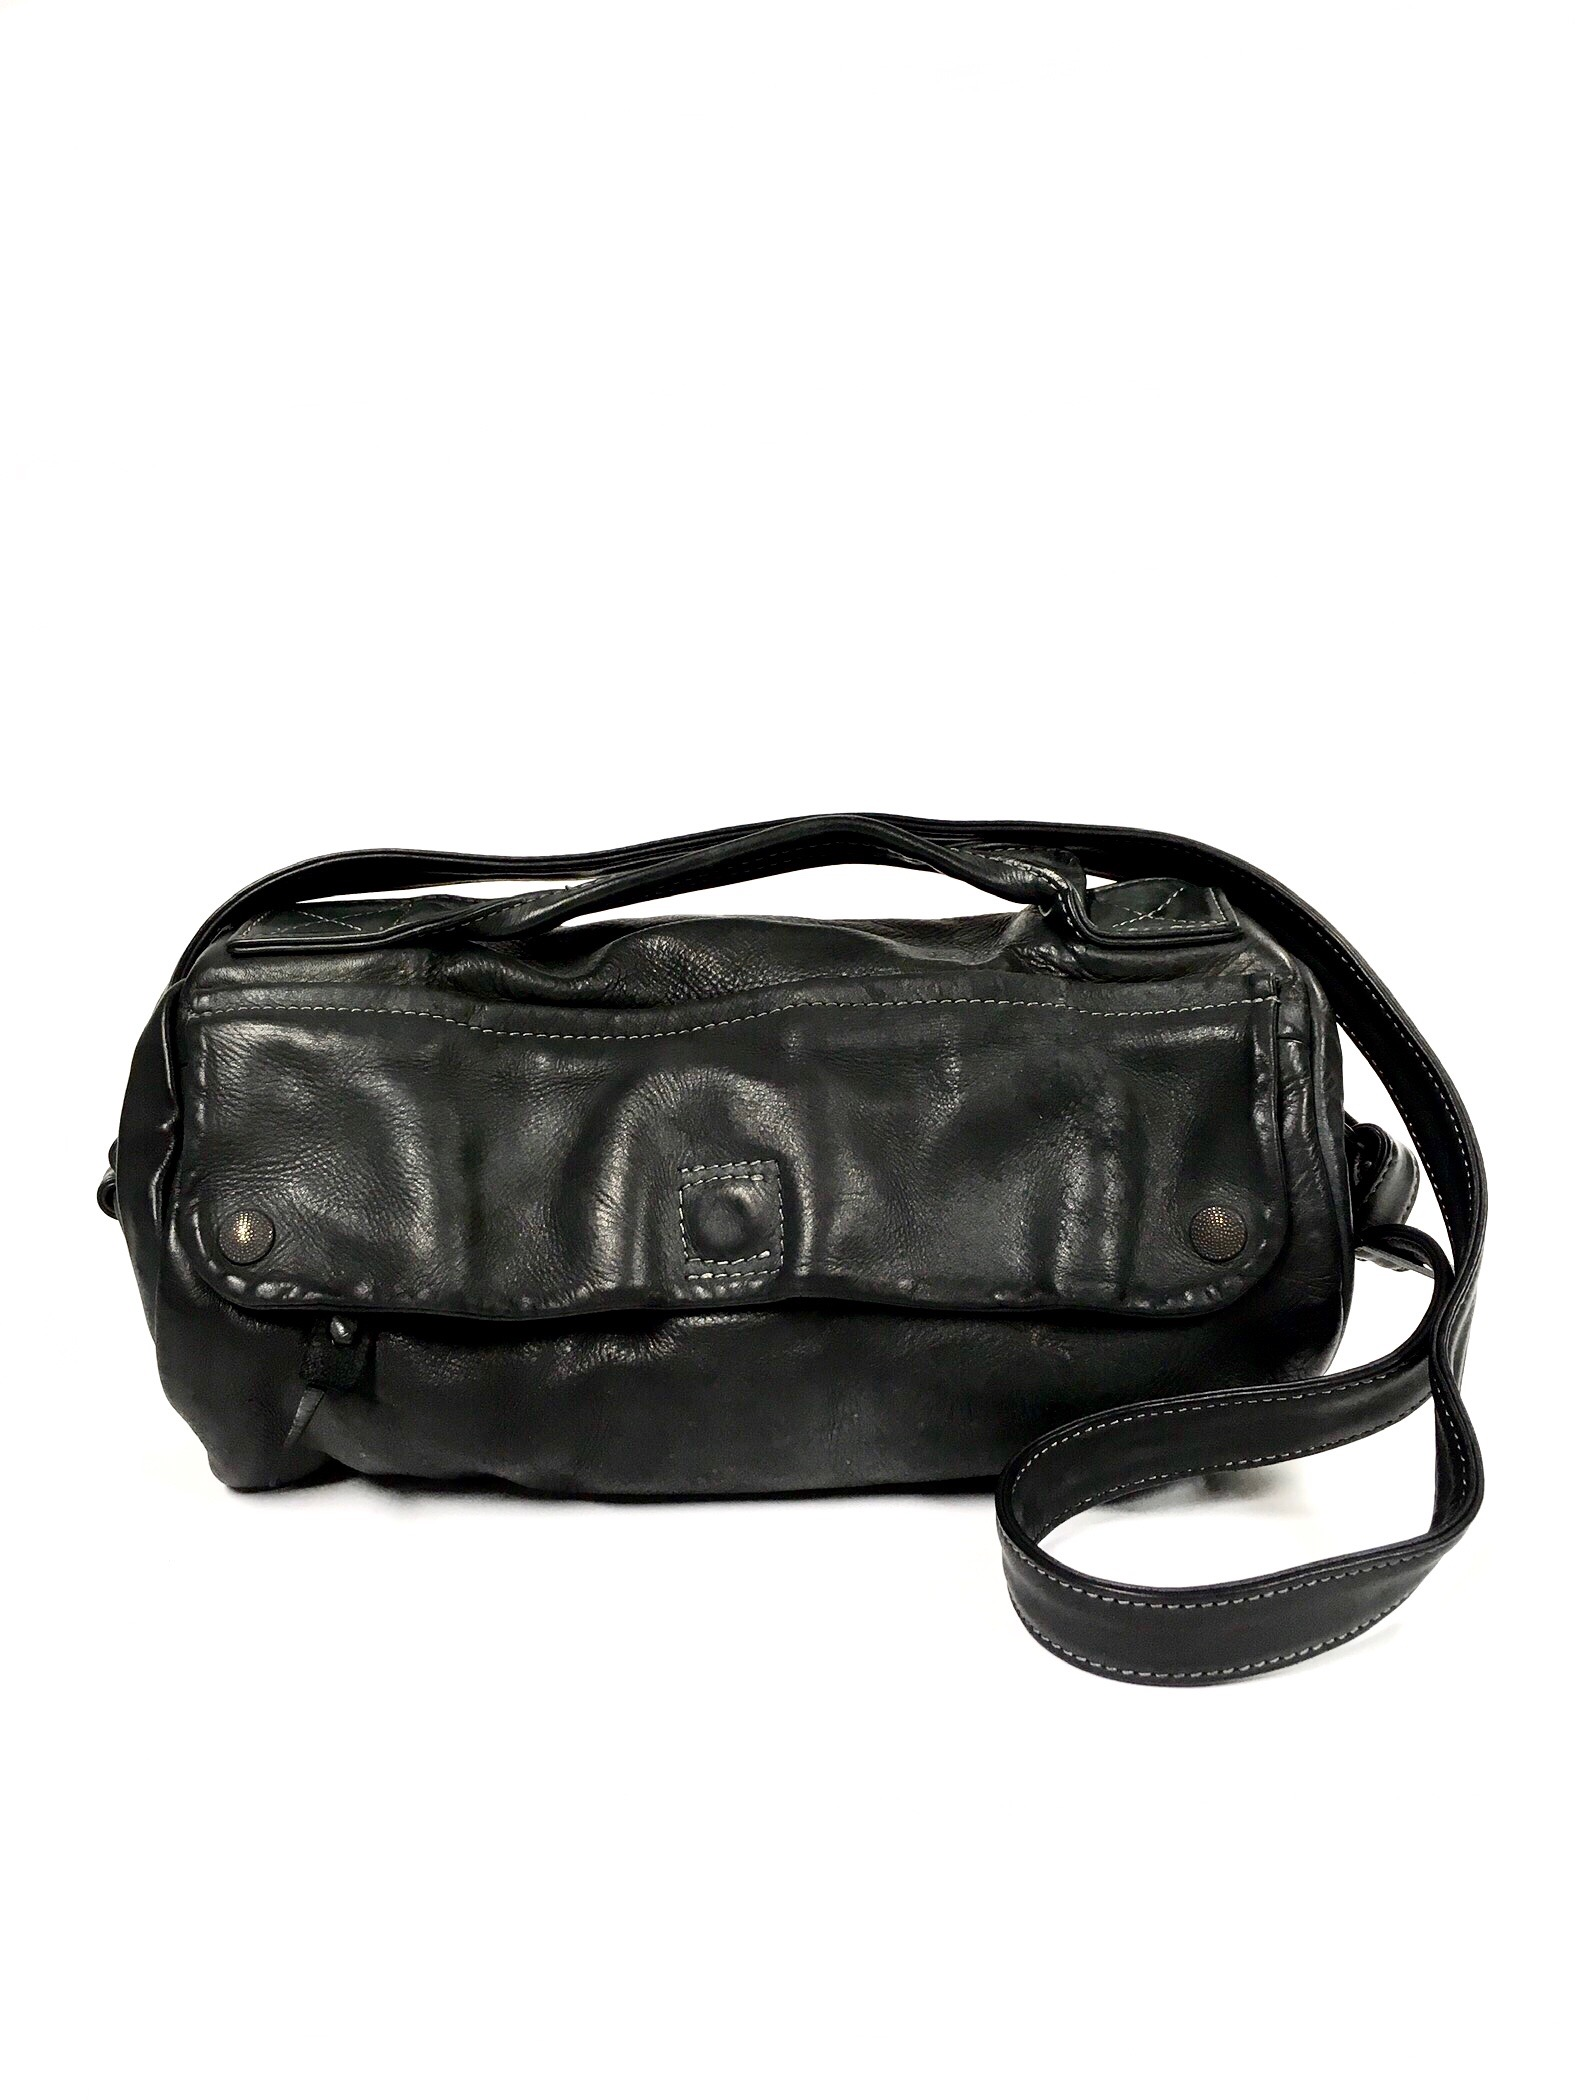 black barrel bag